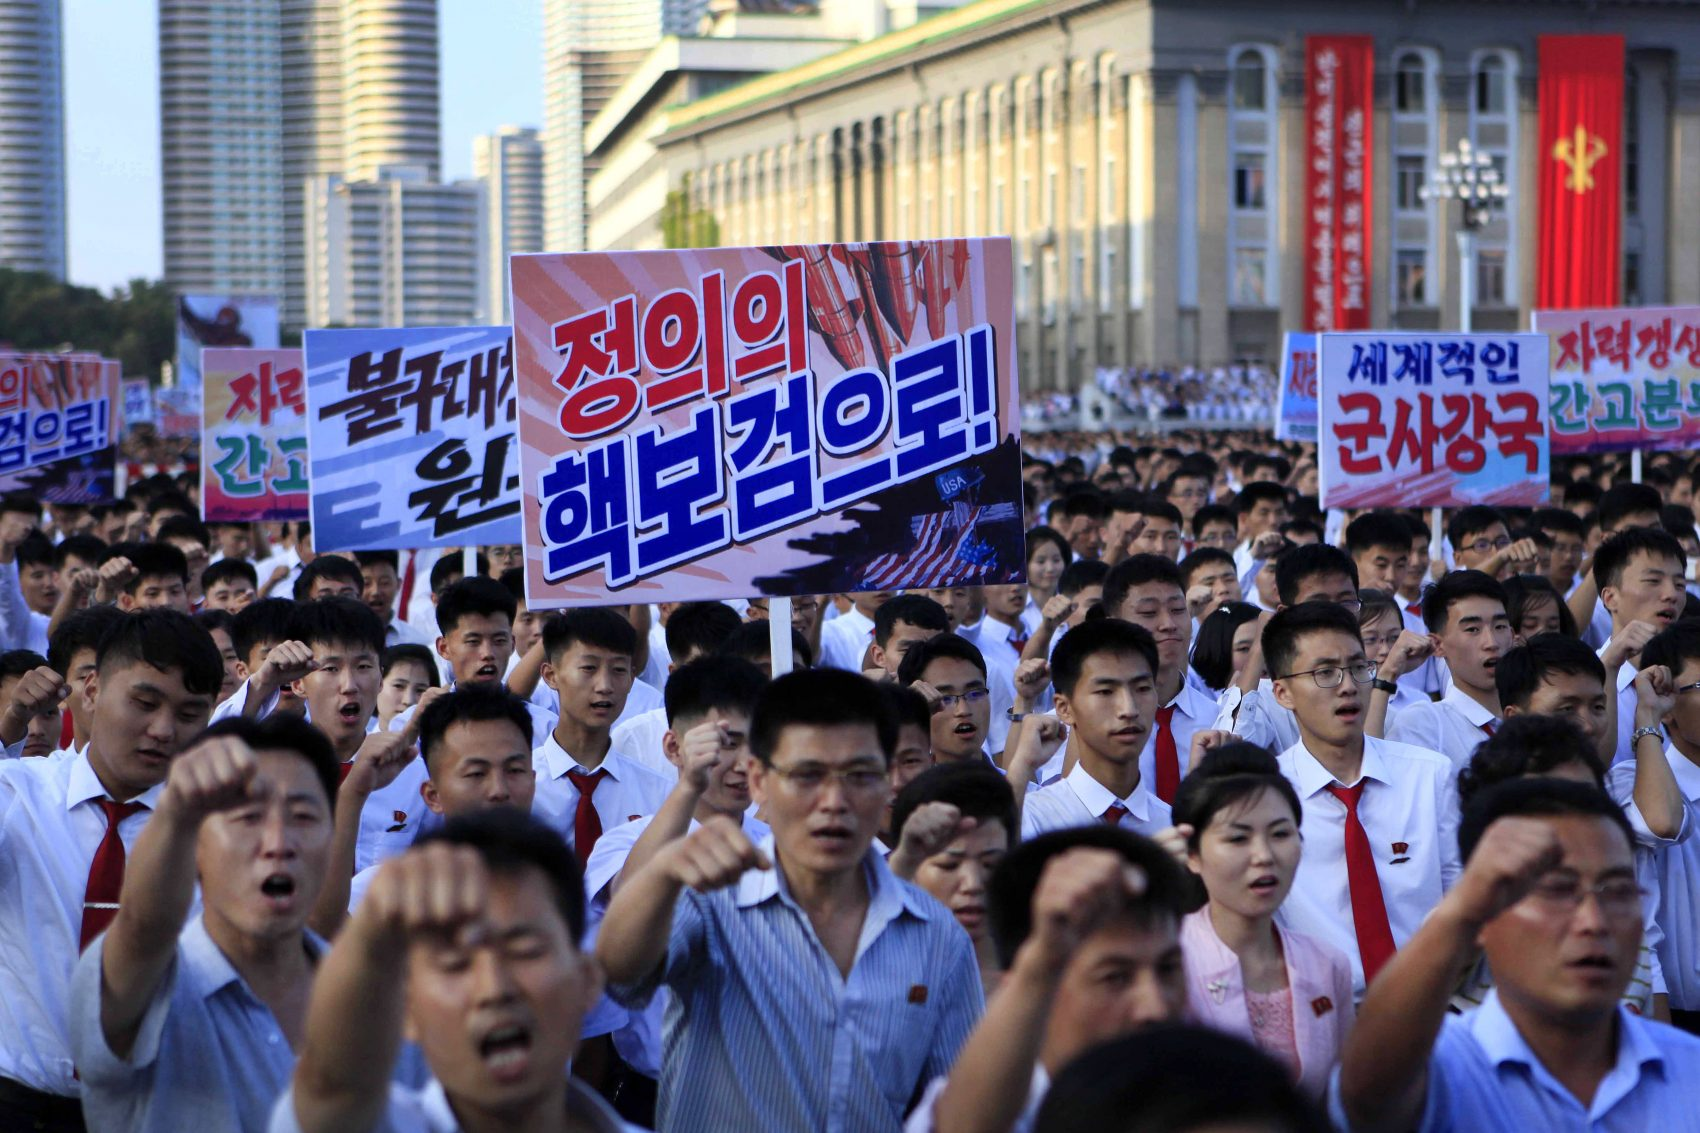 North Koreans gather for a rally at Kim Il Sung Square as a show of support for their rejection of the United Nations' latest round of sanctions on Wednesday Aug. 9, 2017, in Pyongyang, North Korea. (Jon Chol Jin/AP)